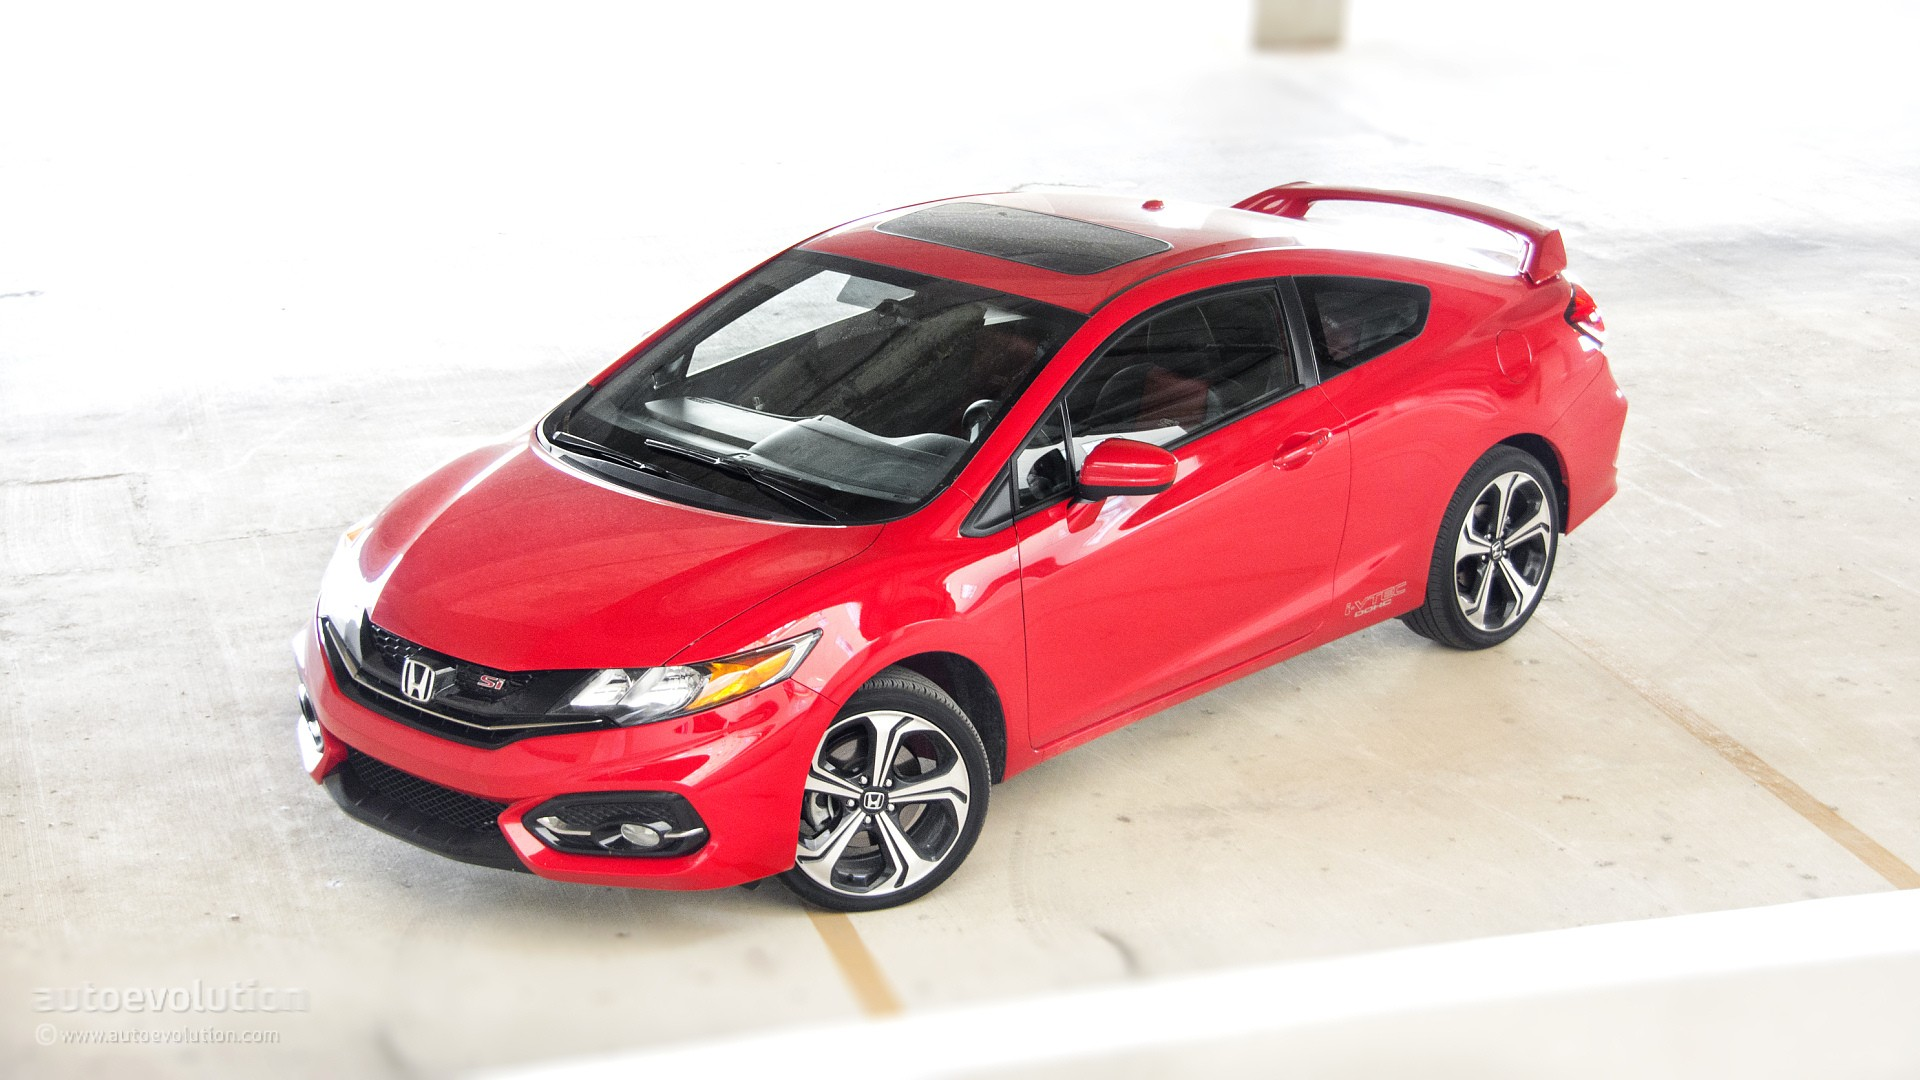 2015 Honda Civic Si Coupe Review - autoevolution